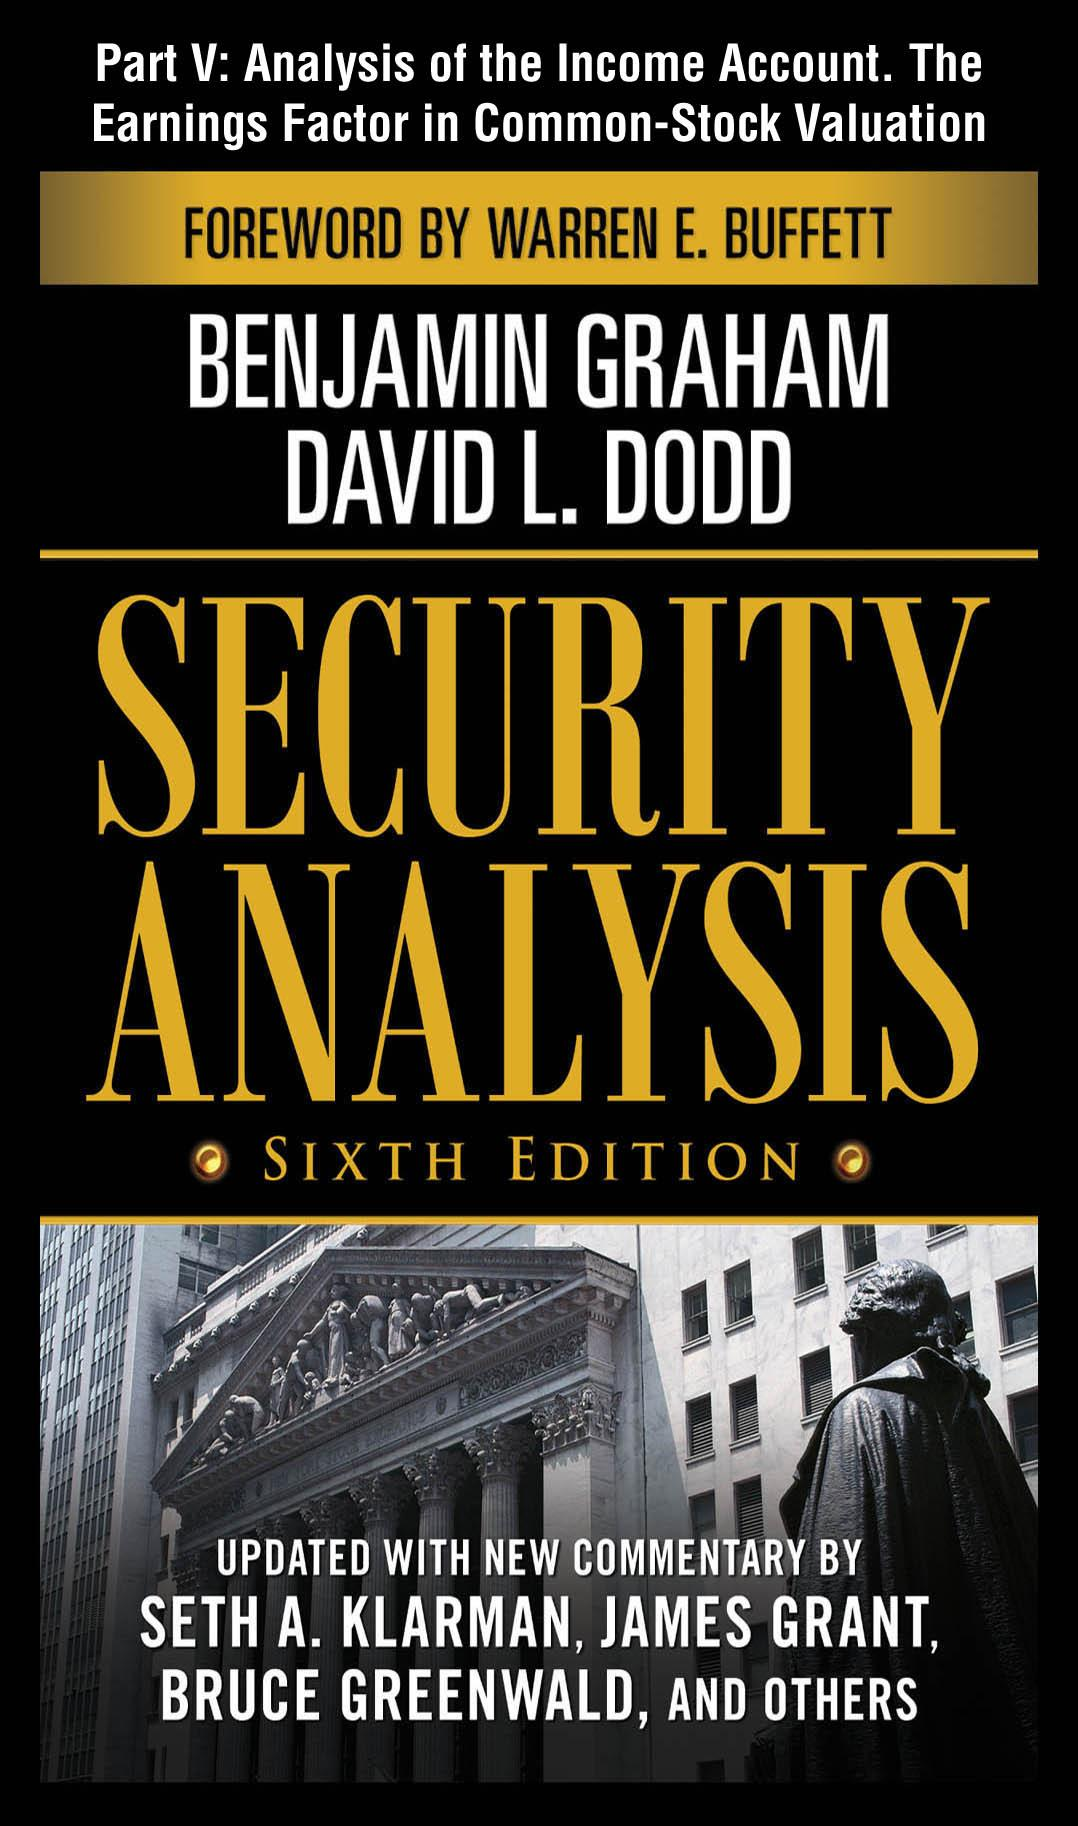 Security Analysis : Sixth Edition, Foreword by Warren Buffett: Analysis of the Income Account. The Earnings Factor in Common-Stock Valuation EB9780071716062